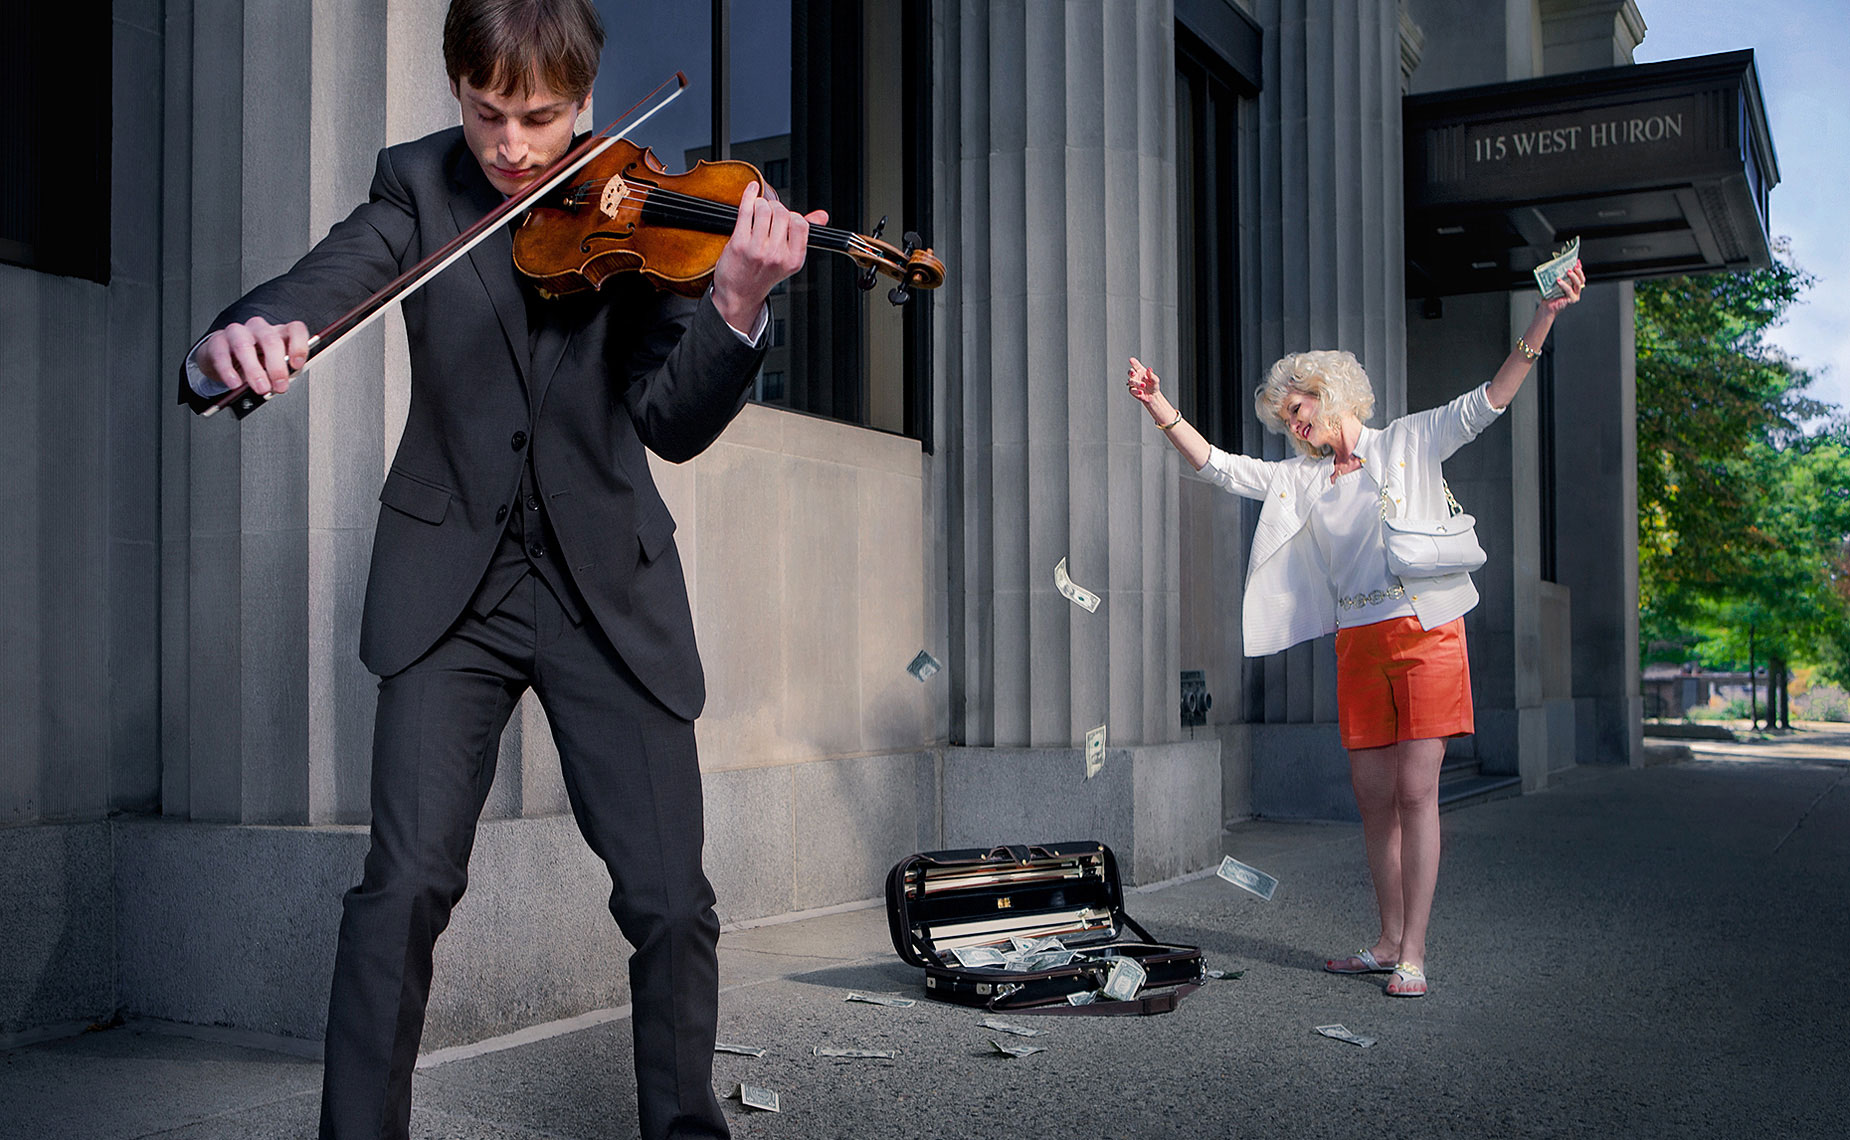 photo-illustration-of-violinist-david-ormai-ann-arbor-michigan-commercial-photographer-scott-stewwart